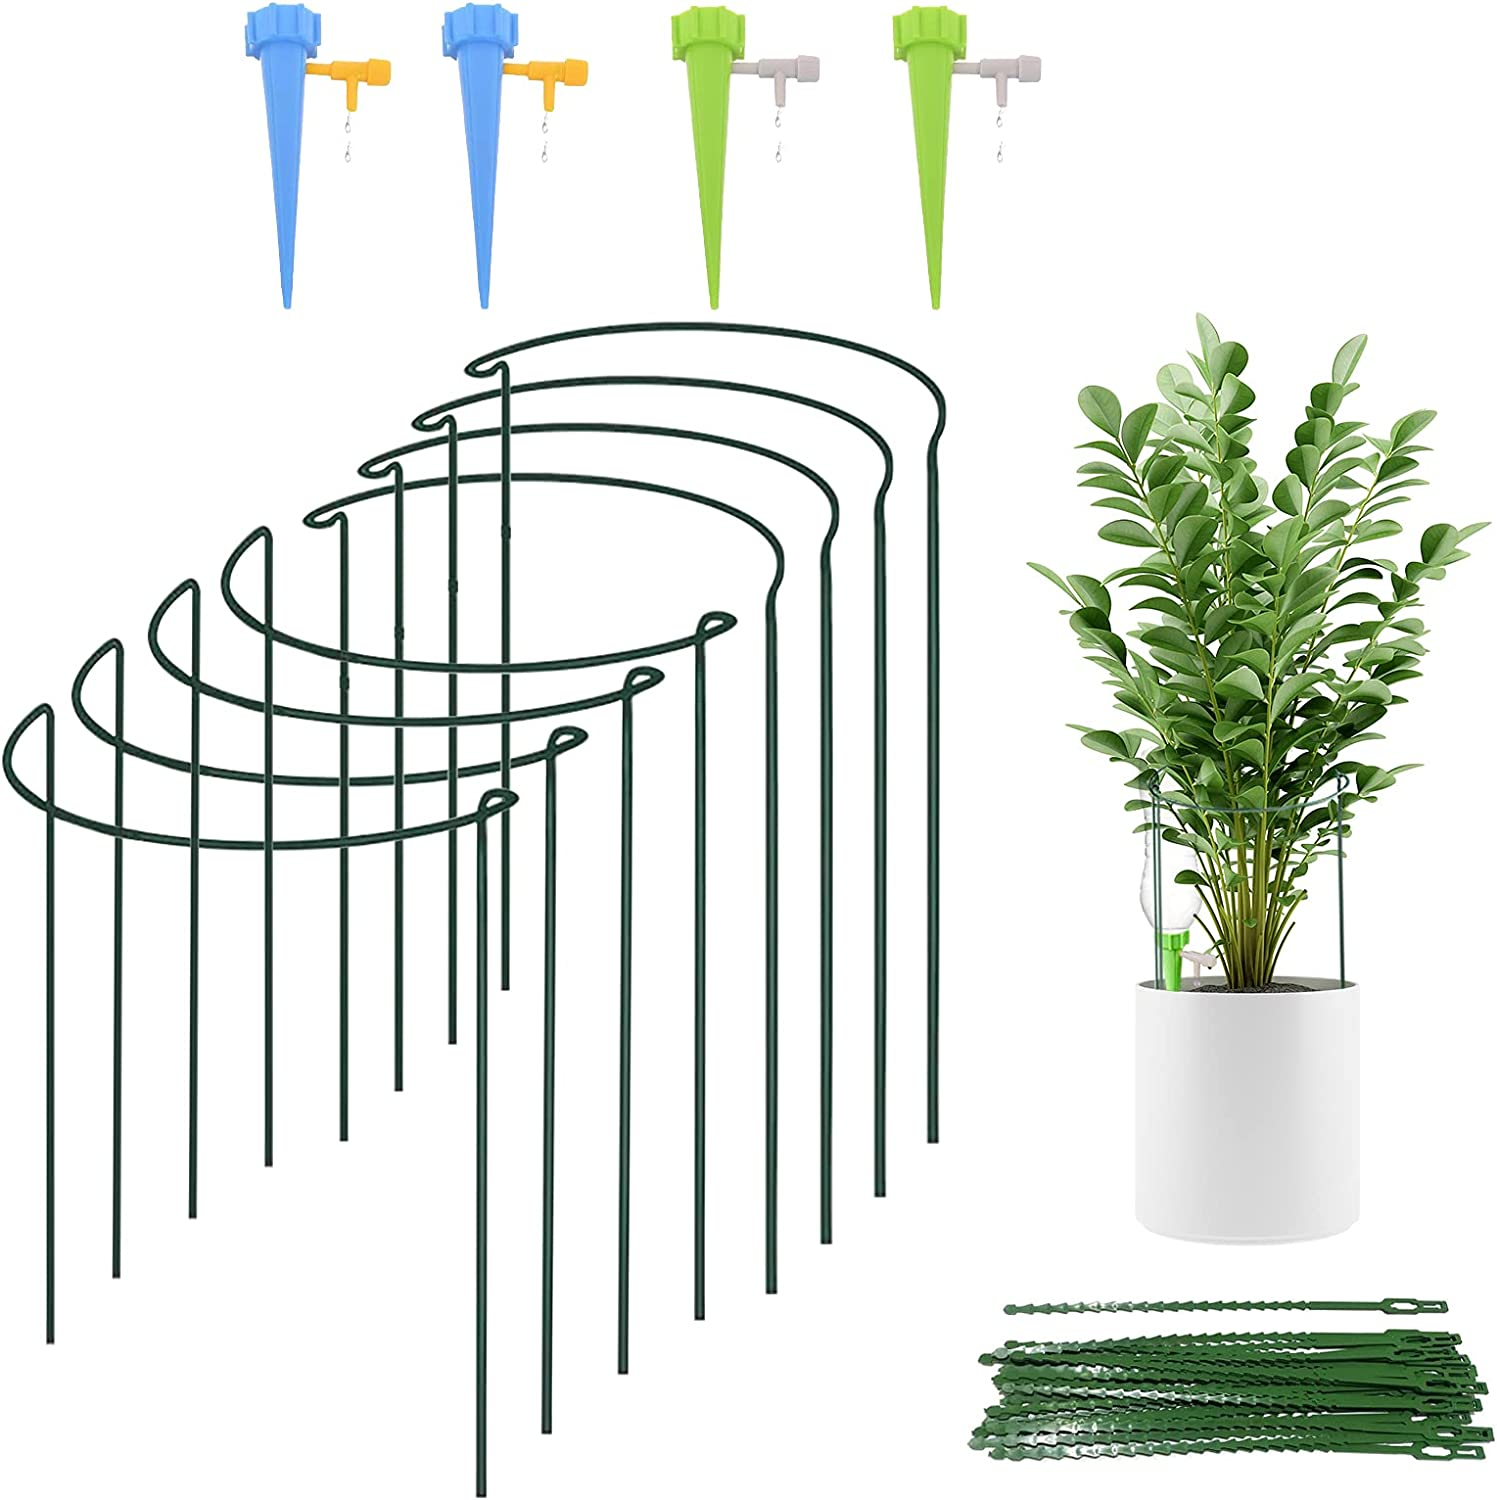 8 Packs sale Plant Support Stake Metal Max 85% OFF Garden Half Green Round